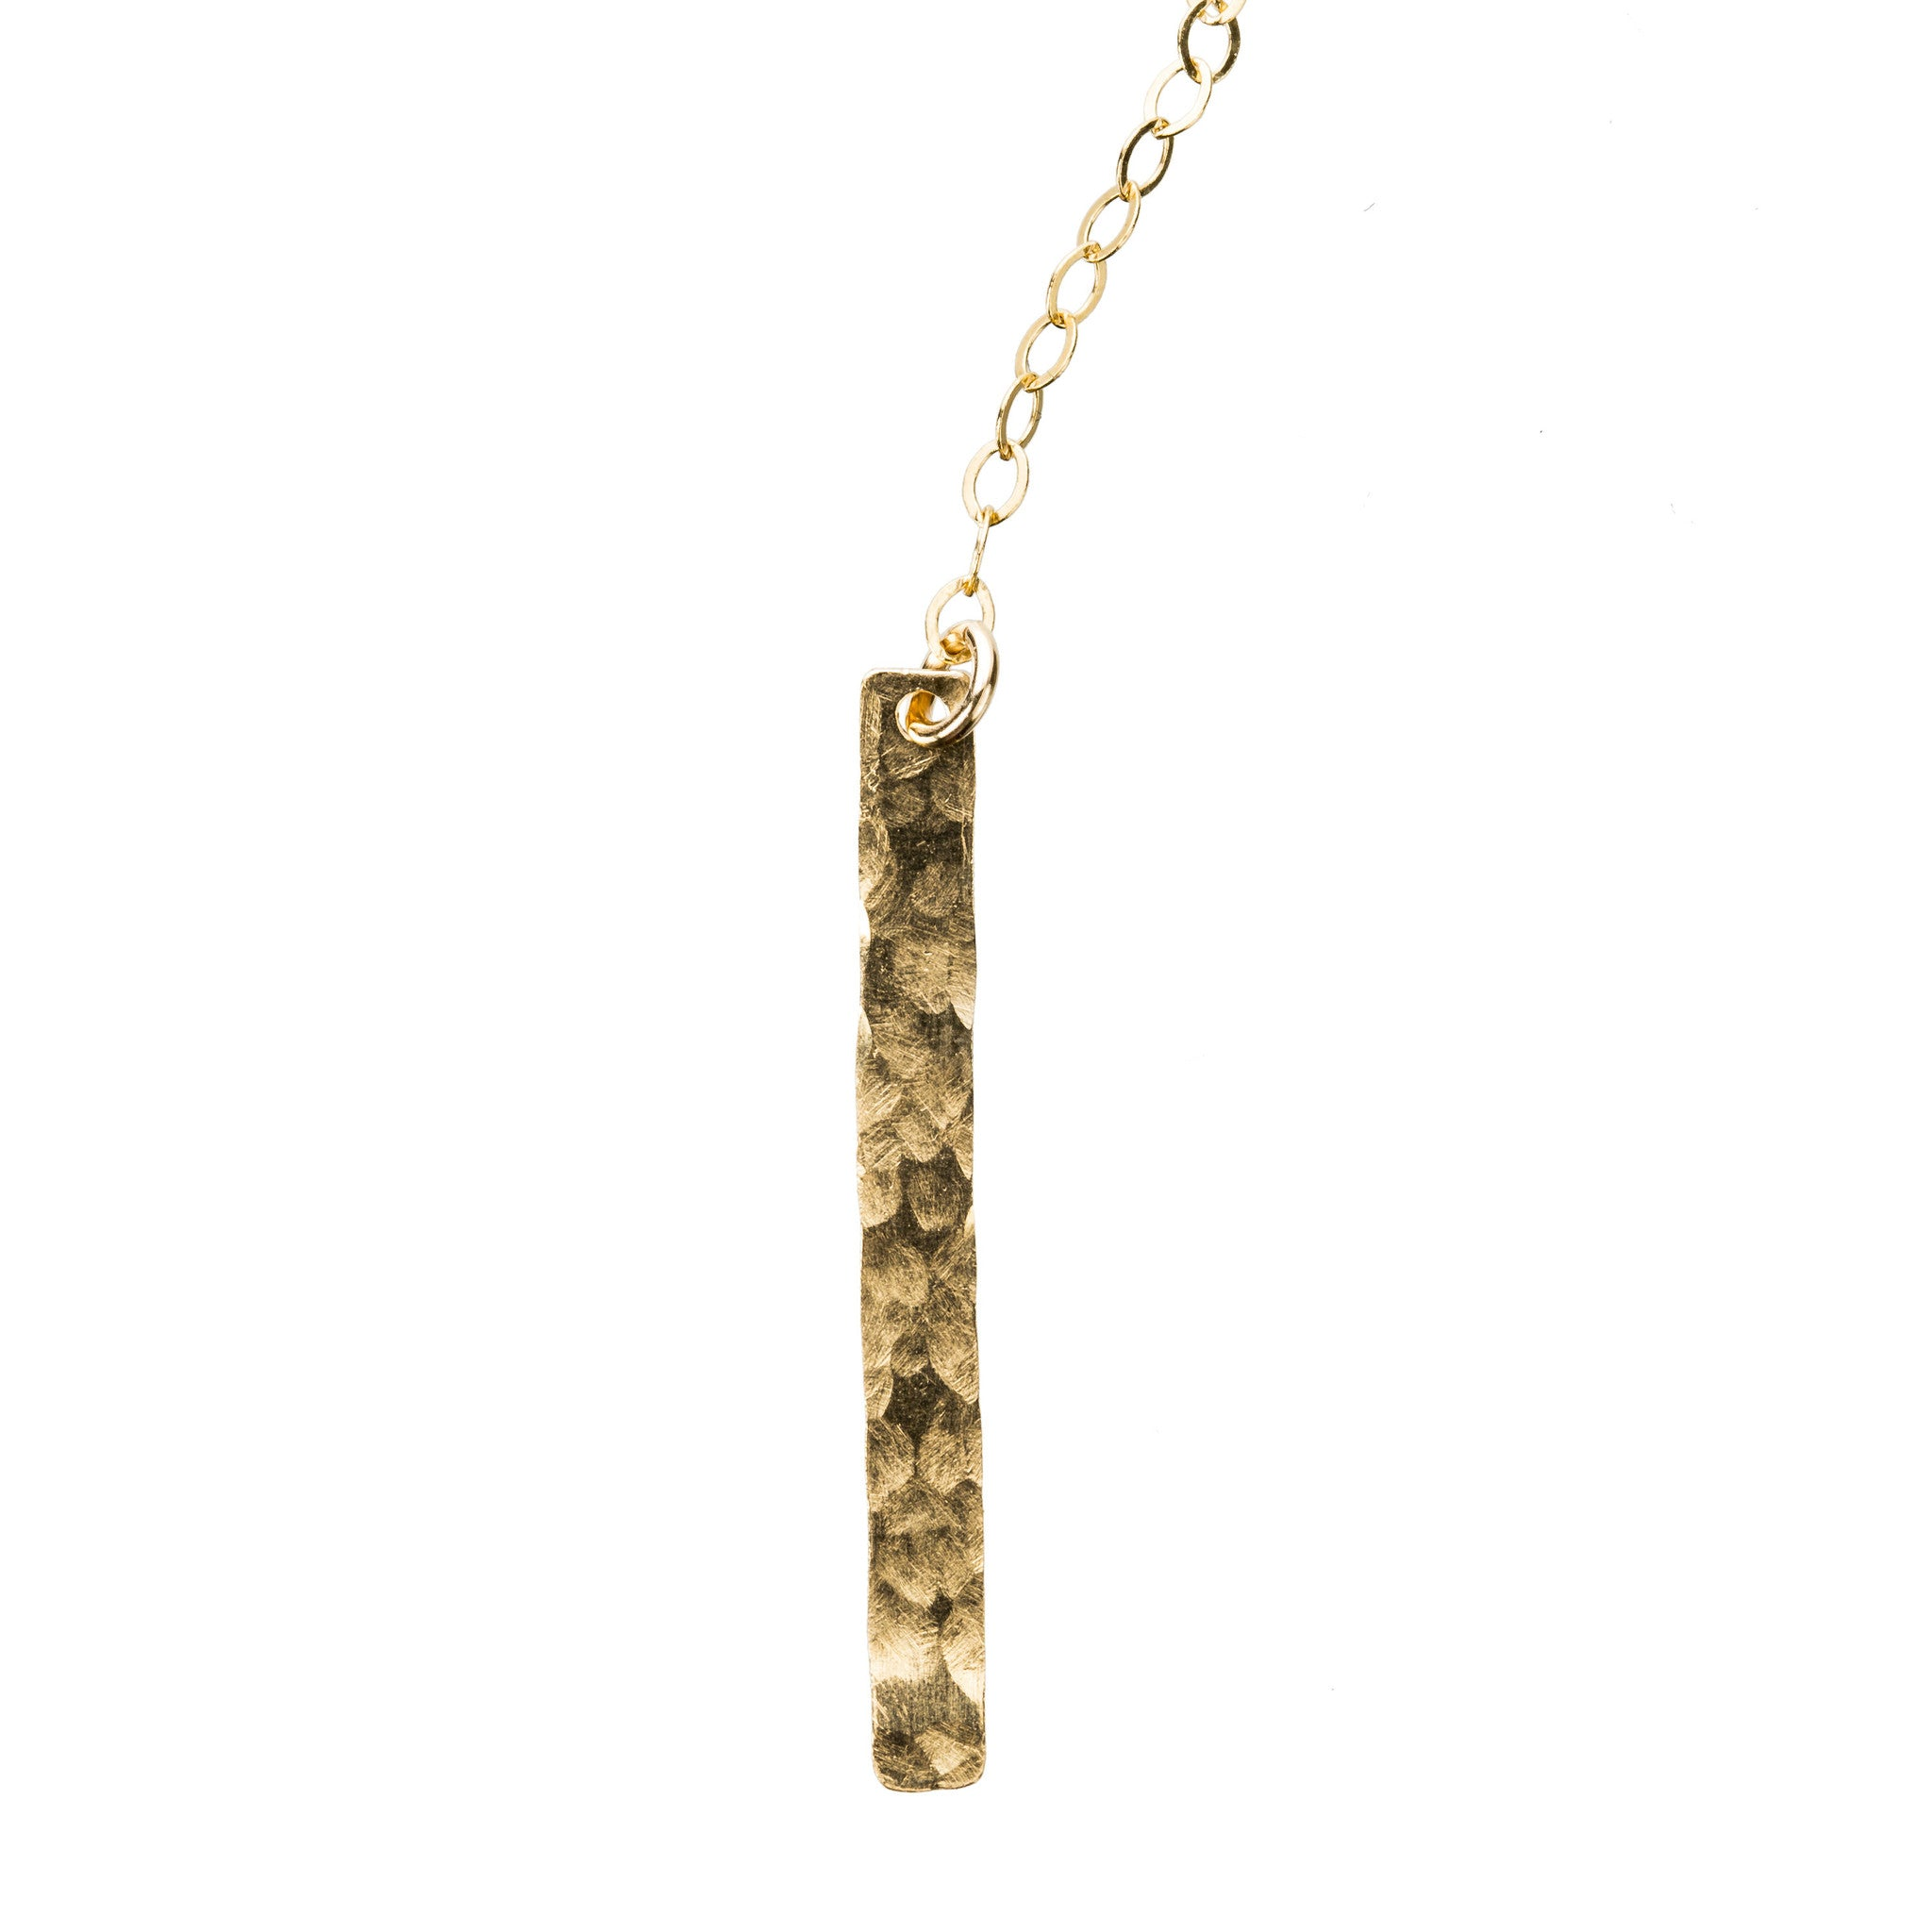 Kay Gold Filled Lariat Necklace